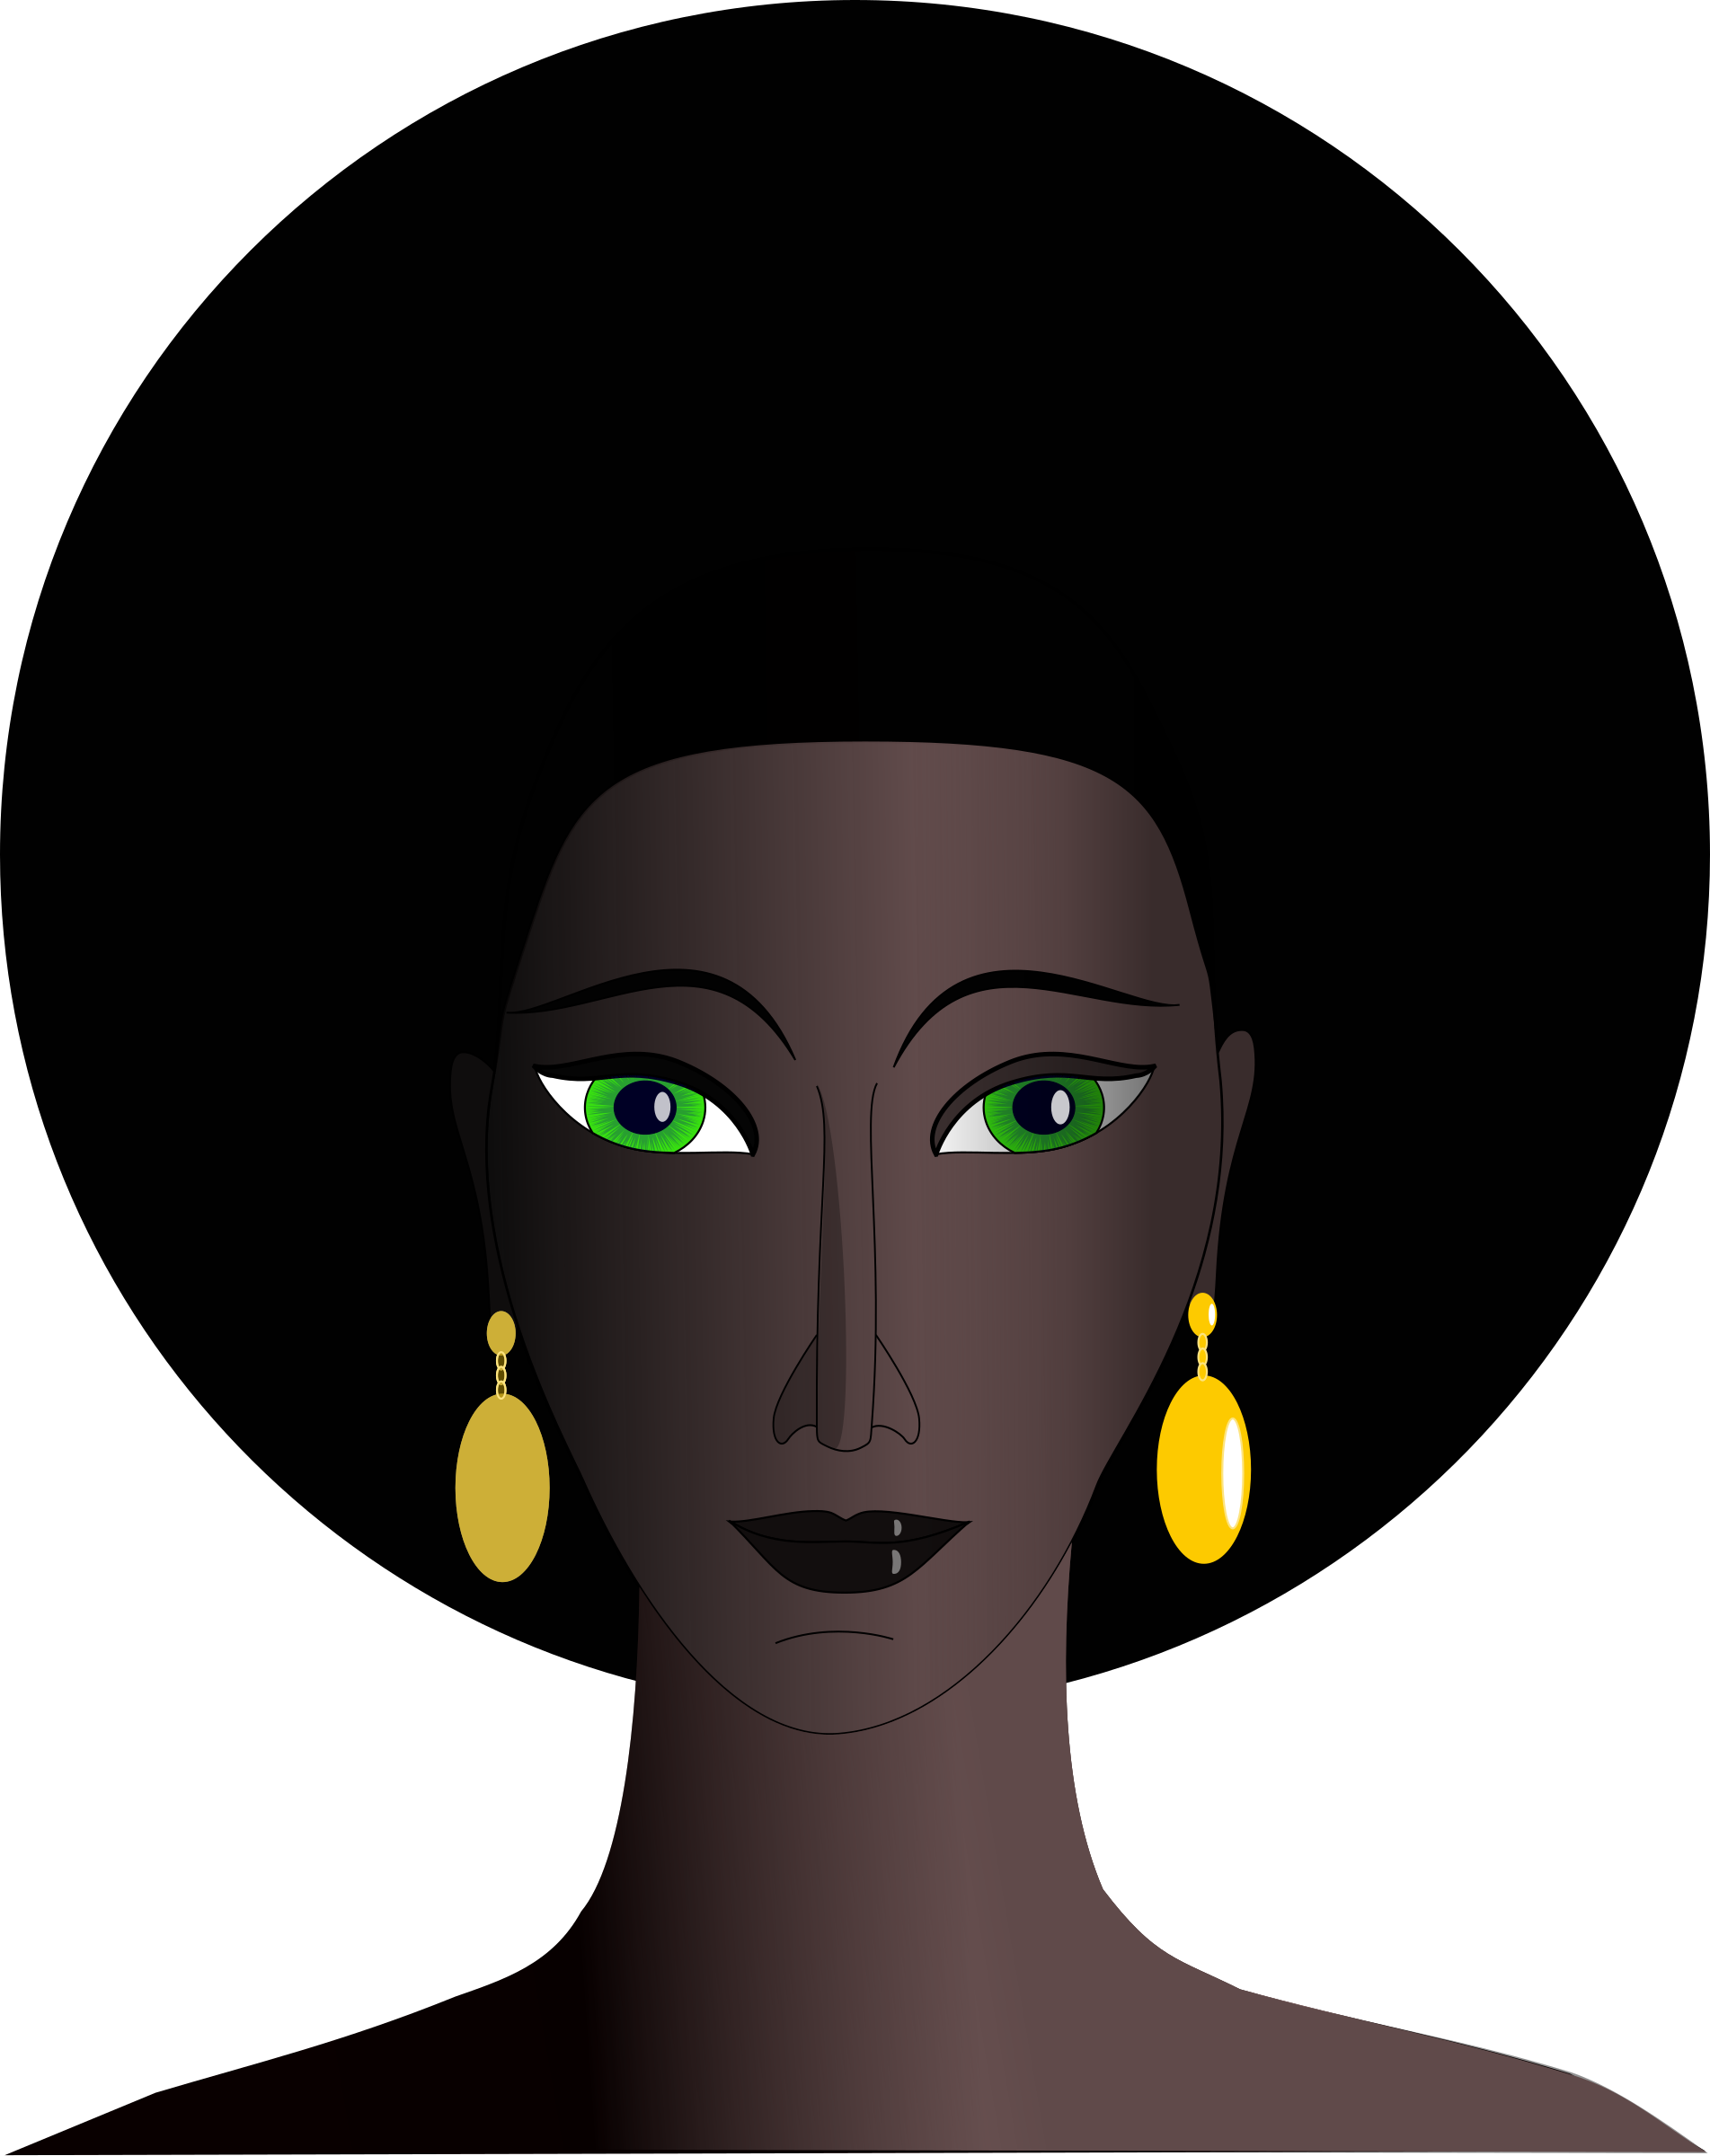 Afro clipart green hair. Black woman with eyes